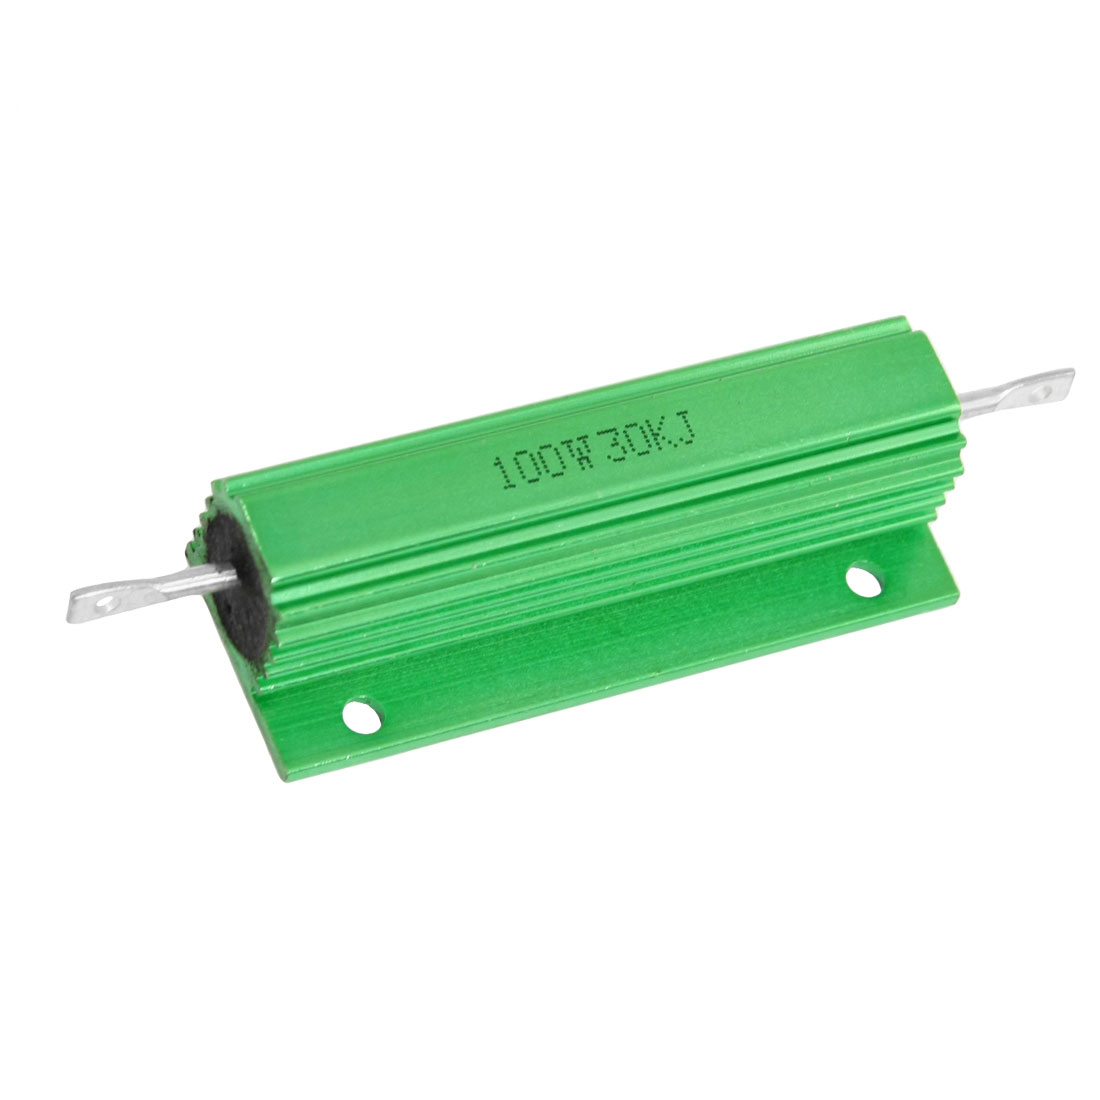 100W 30K Ohm Green Aluminium Clad Chassis Mounted Housed Resistor